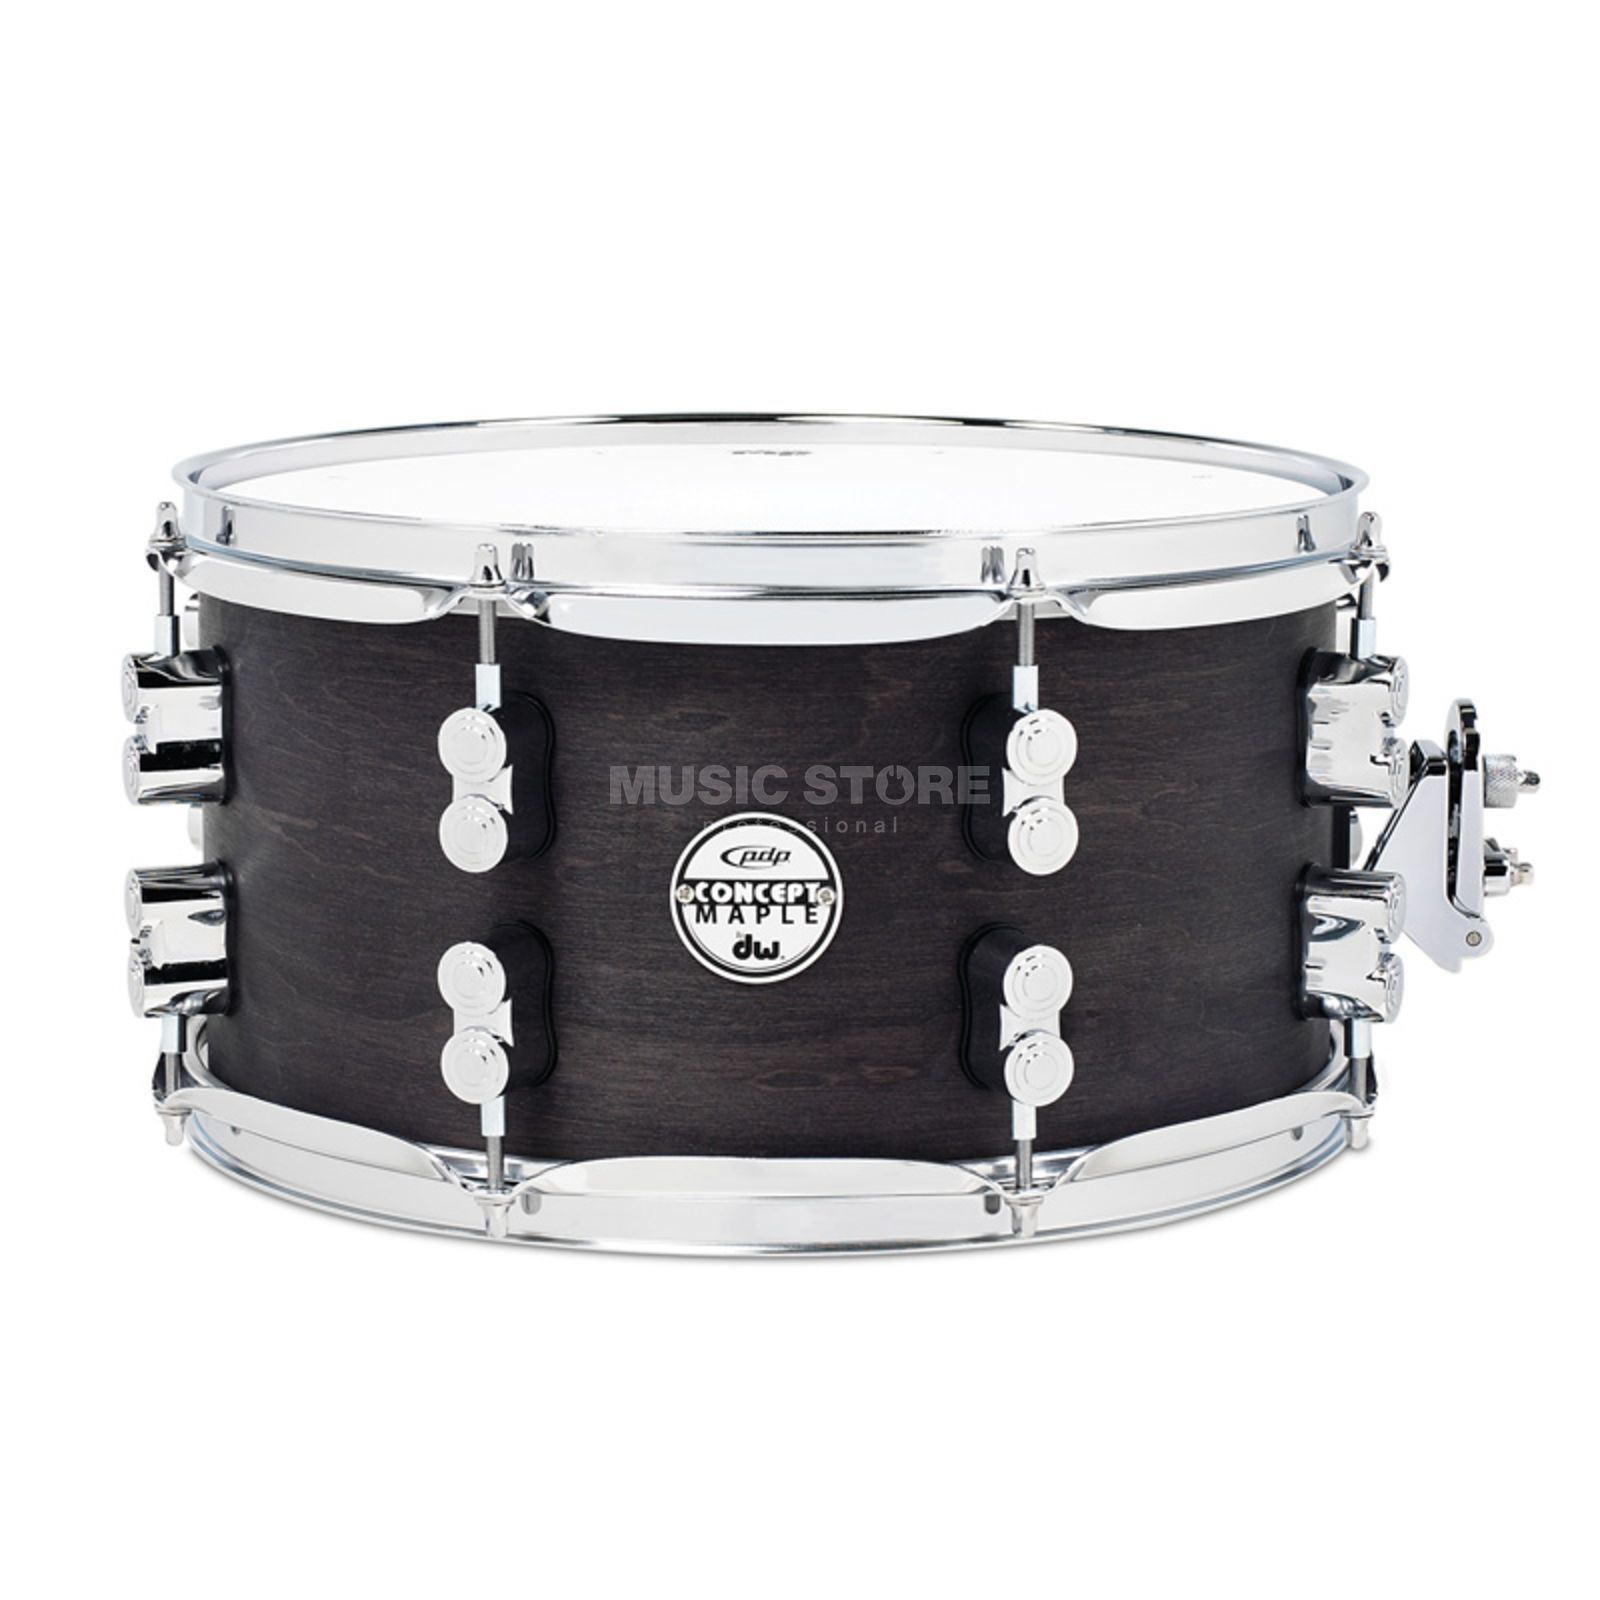 "Drum Workshop PDP Black Wax Snare 13""x7"" Produktbild"